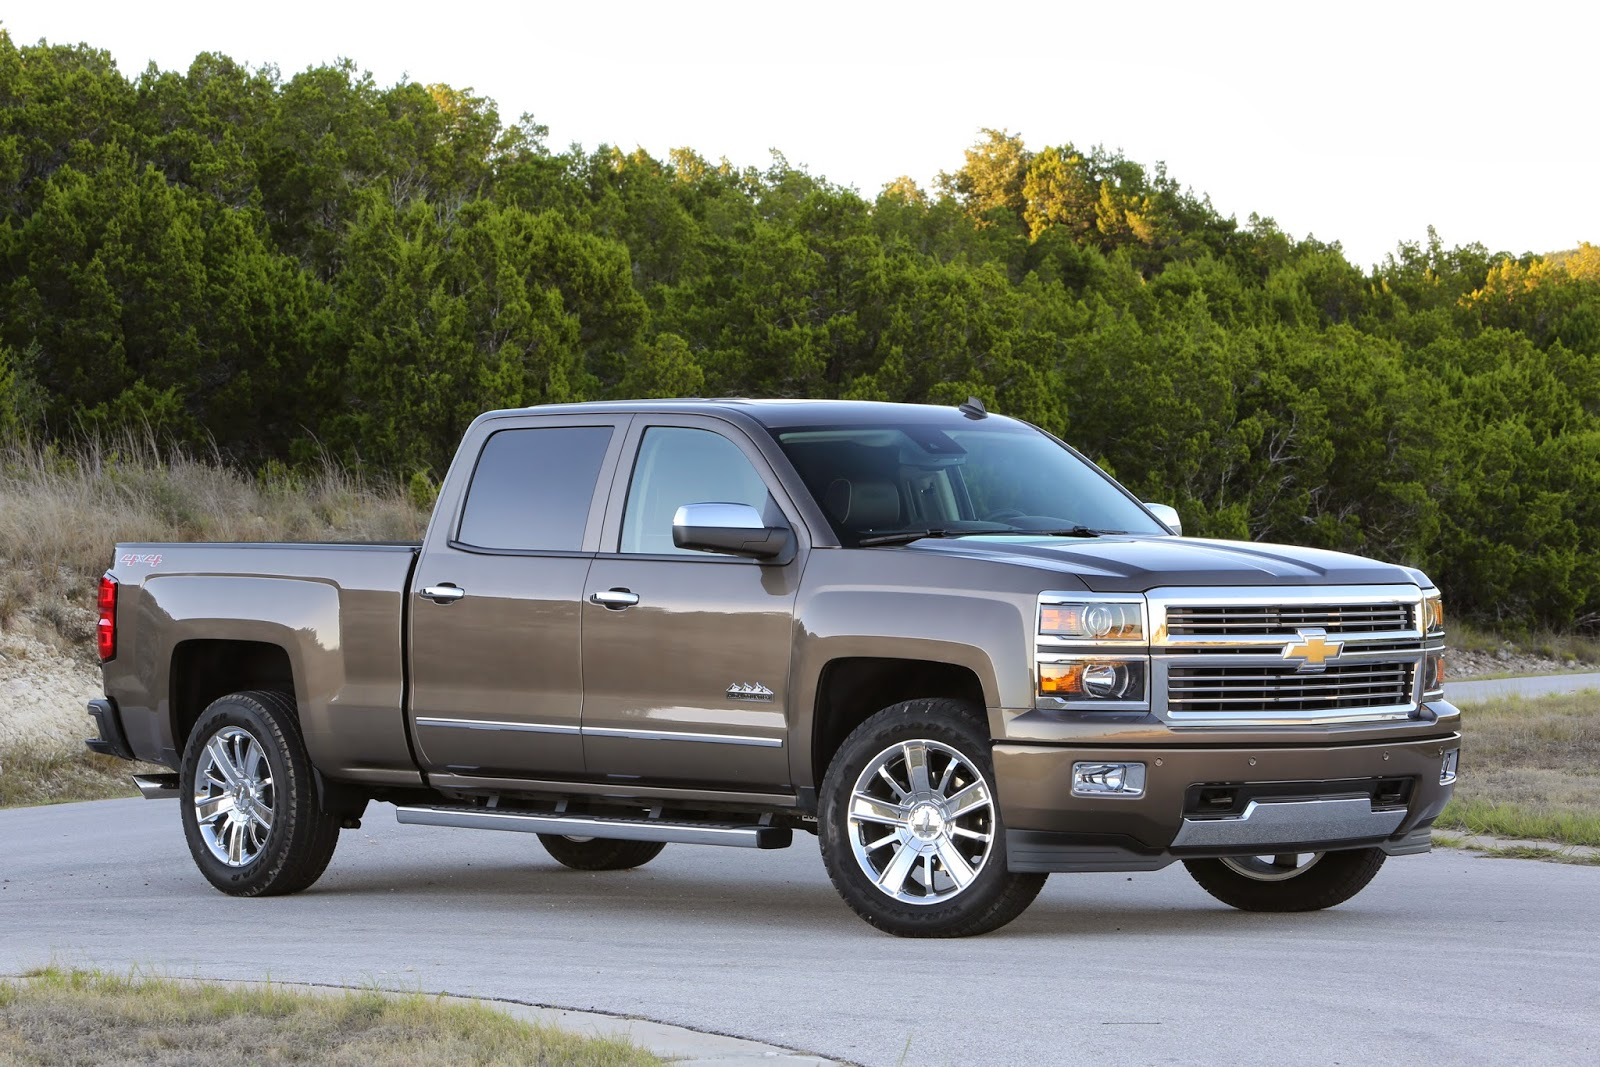 Chevy Silverado has all the proper pickup perks